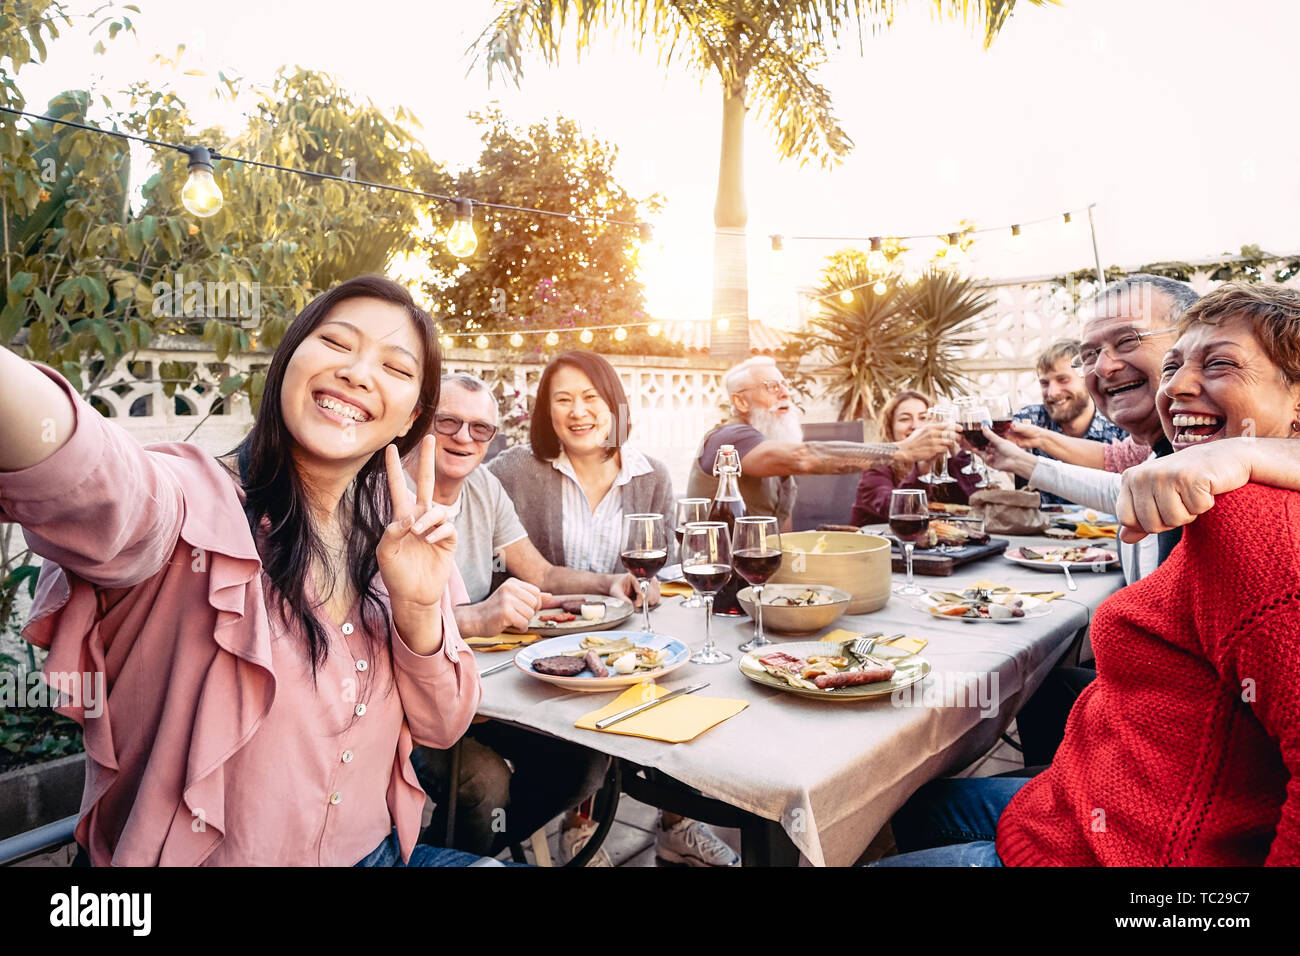 Happy family cheering and toasting with red wine glasses at dinner outdoor - People with different ages and ethnicity having fun at bbq party Stock Photo